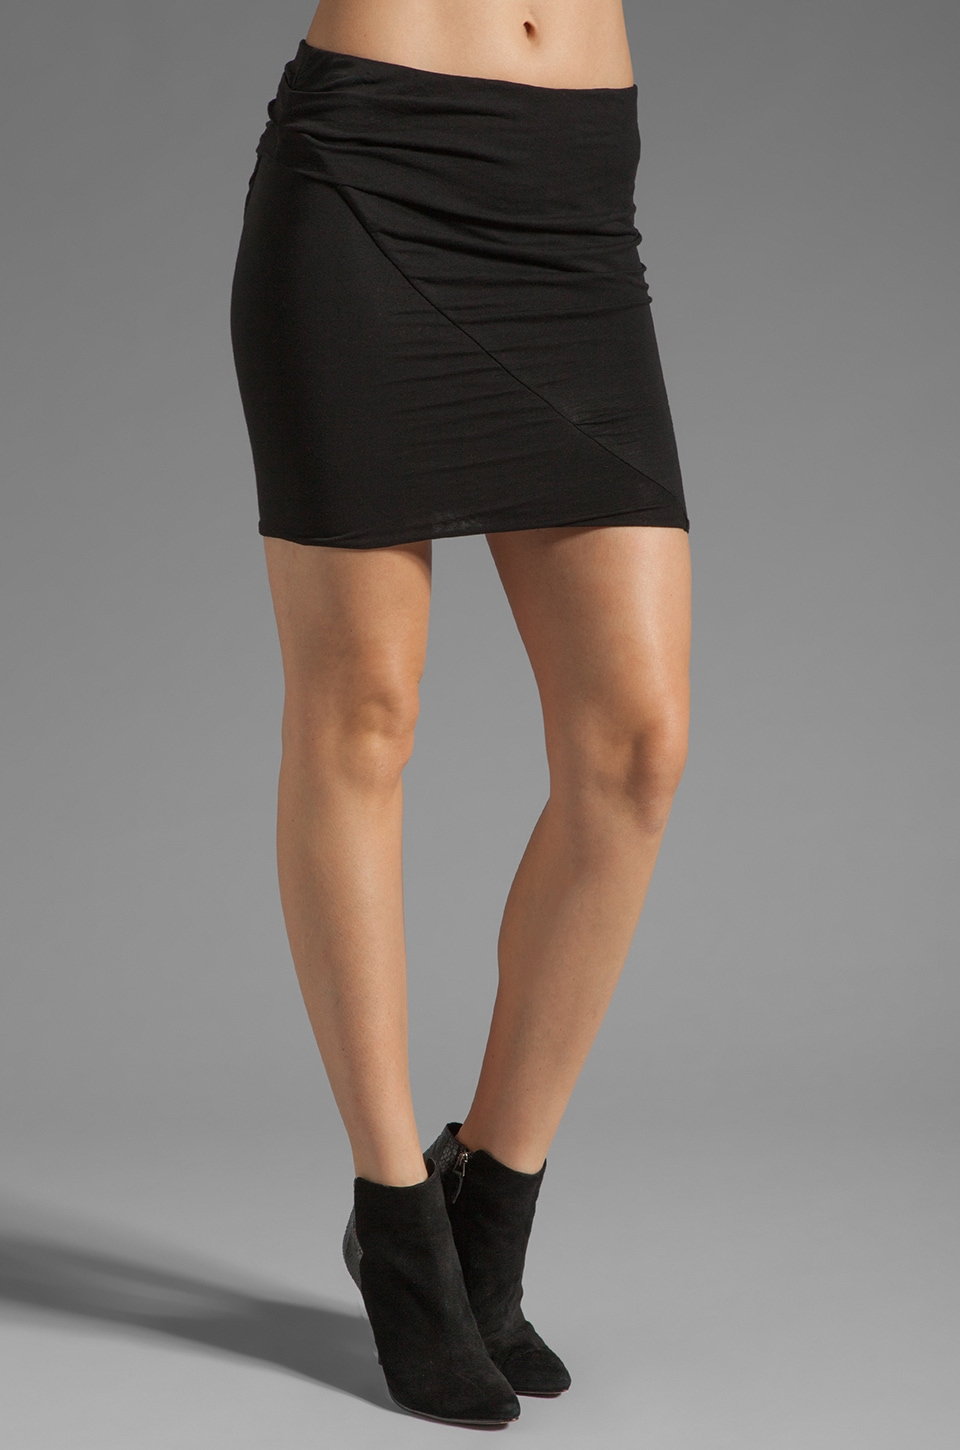 James Perse Asymmetrical Tuck Skirt in Black